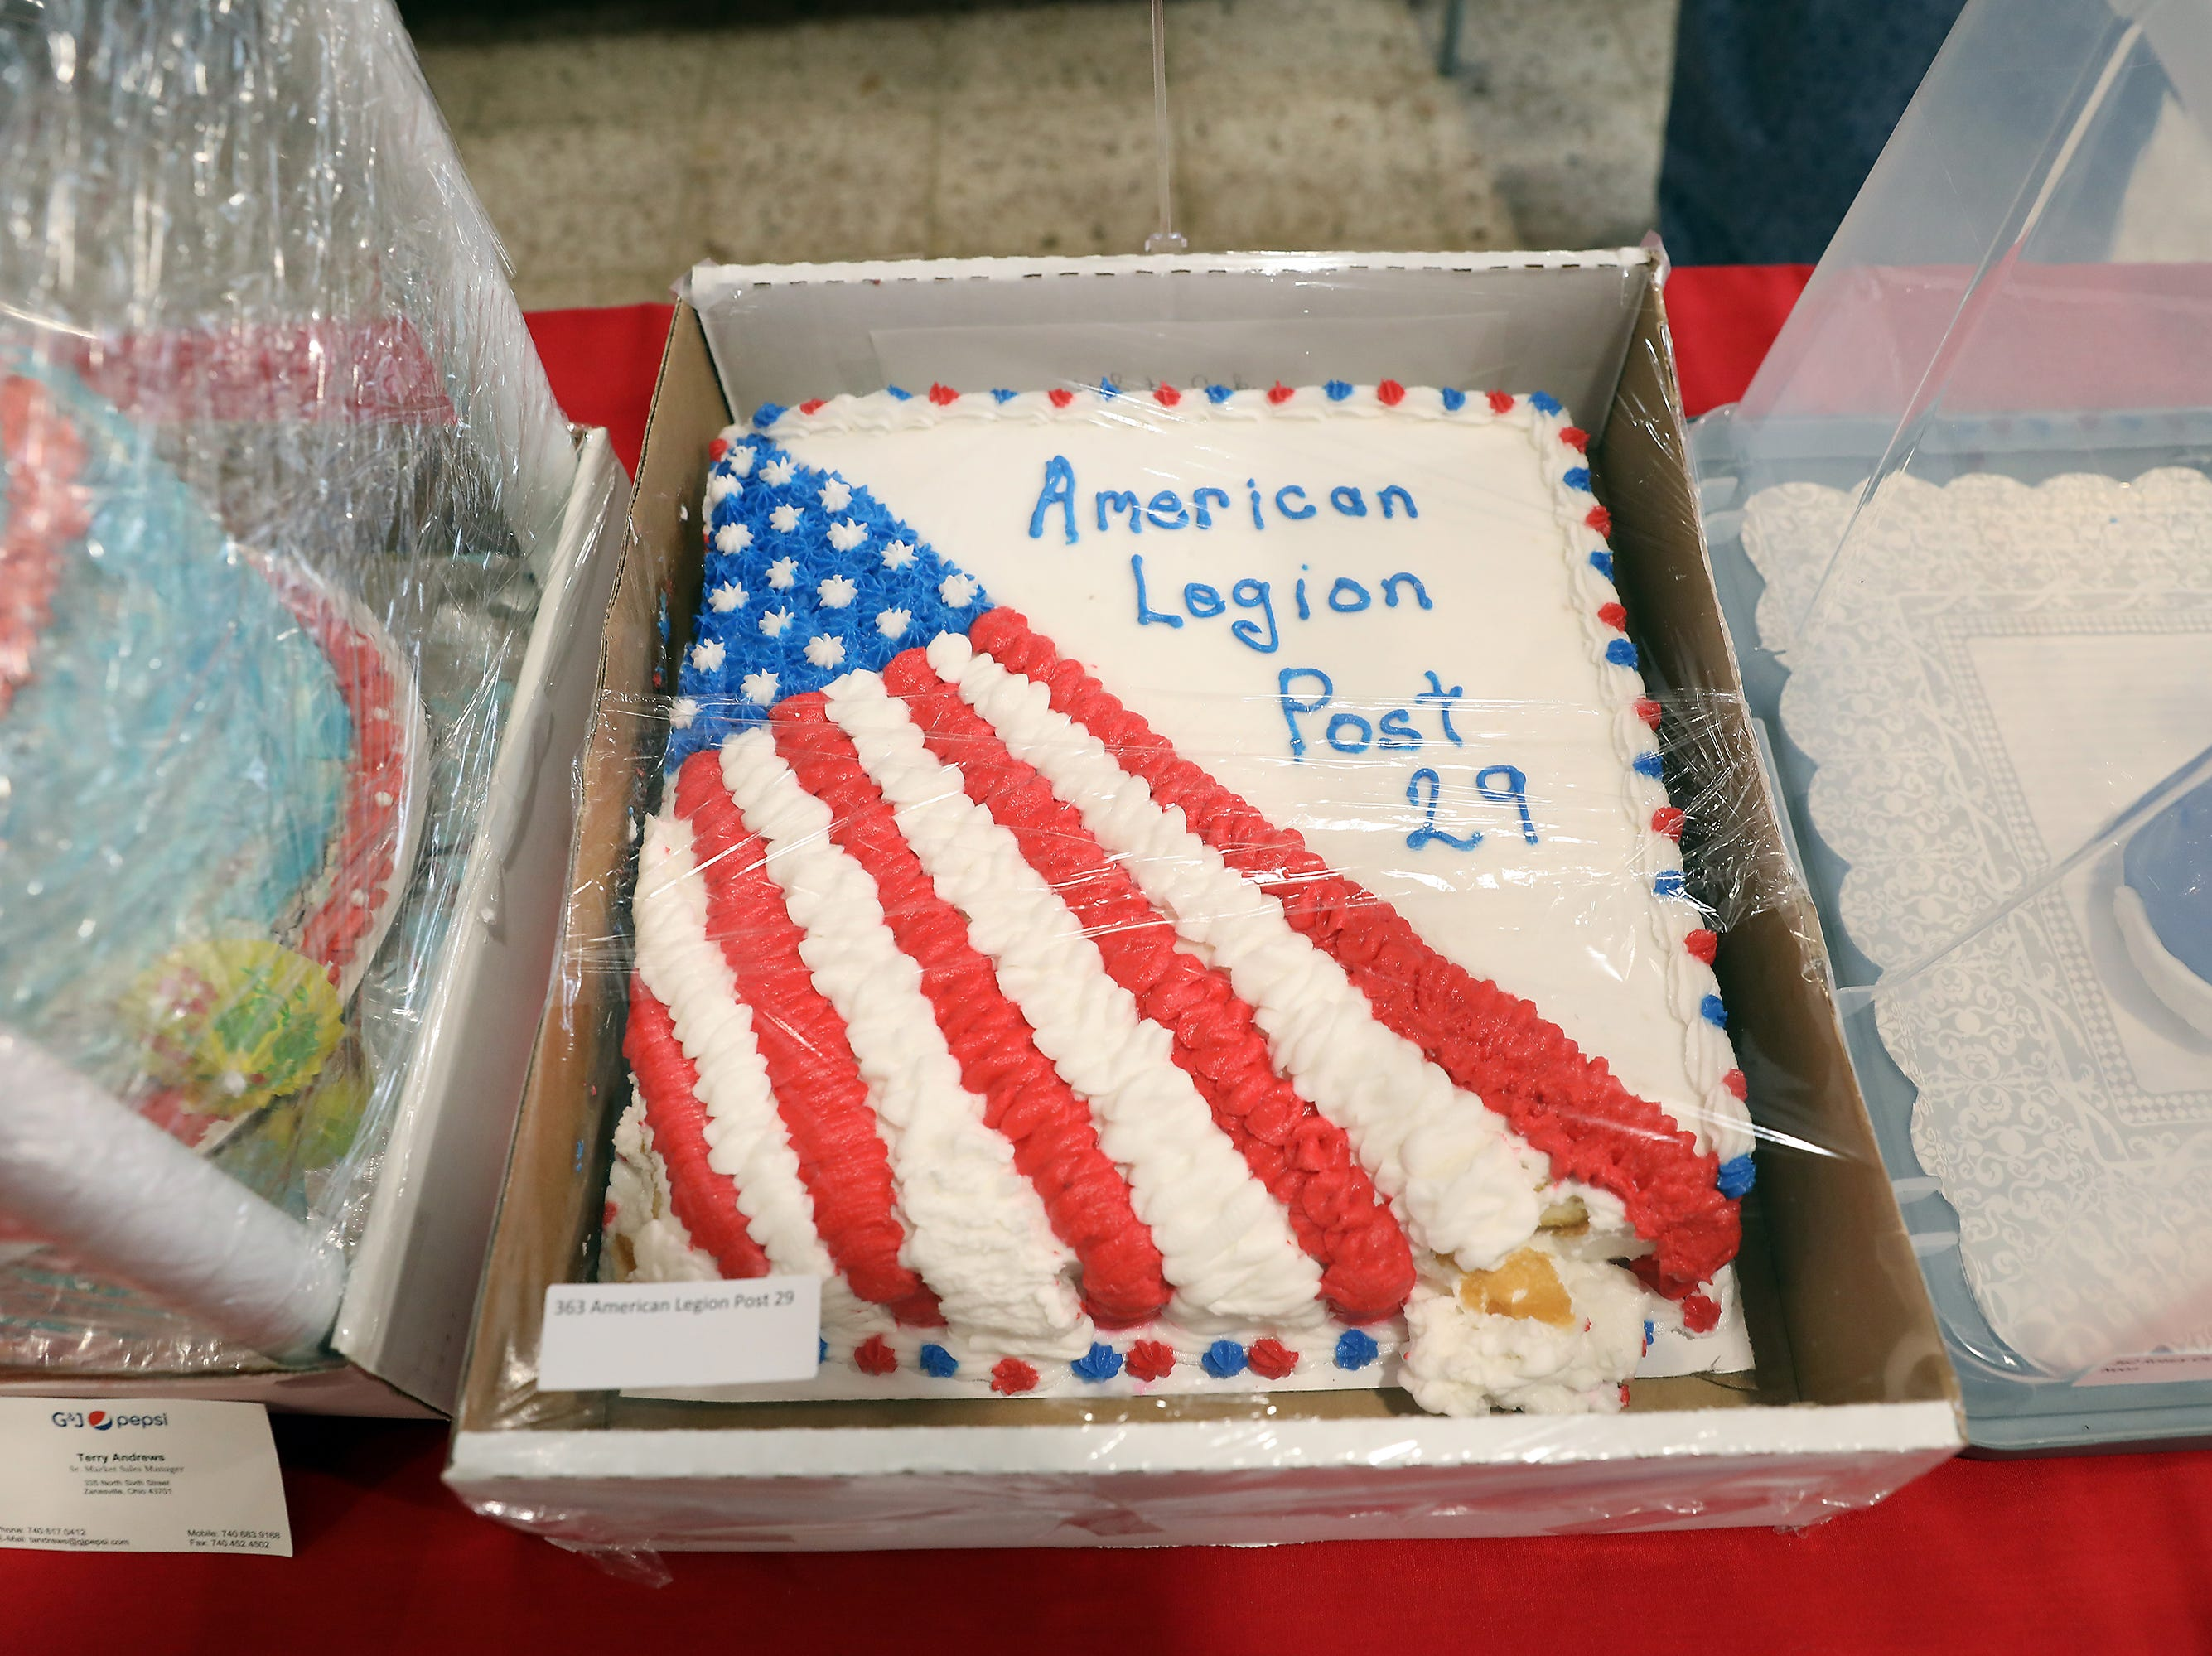 3:30 P.M. Friday cake 363 American Legion Post 29 - 4x6 flag, $250 gift cards to Kroger and Walmart